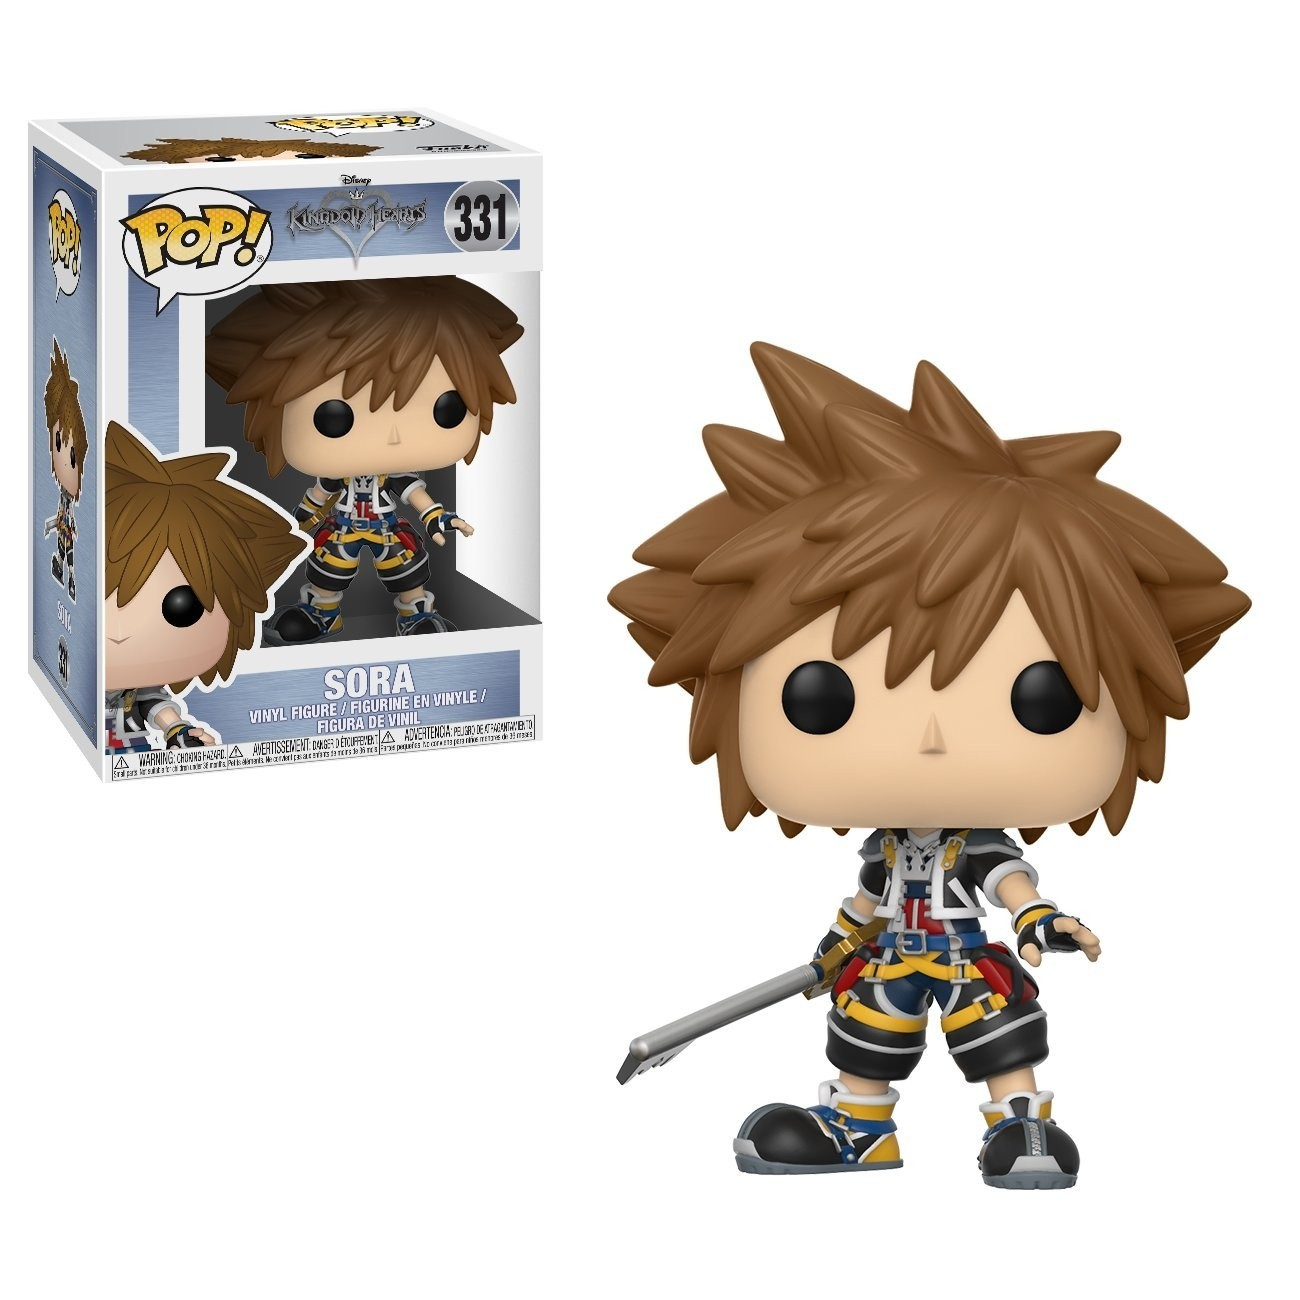 POP! Vinyl: Disney: Kingdom Hearts: Sora